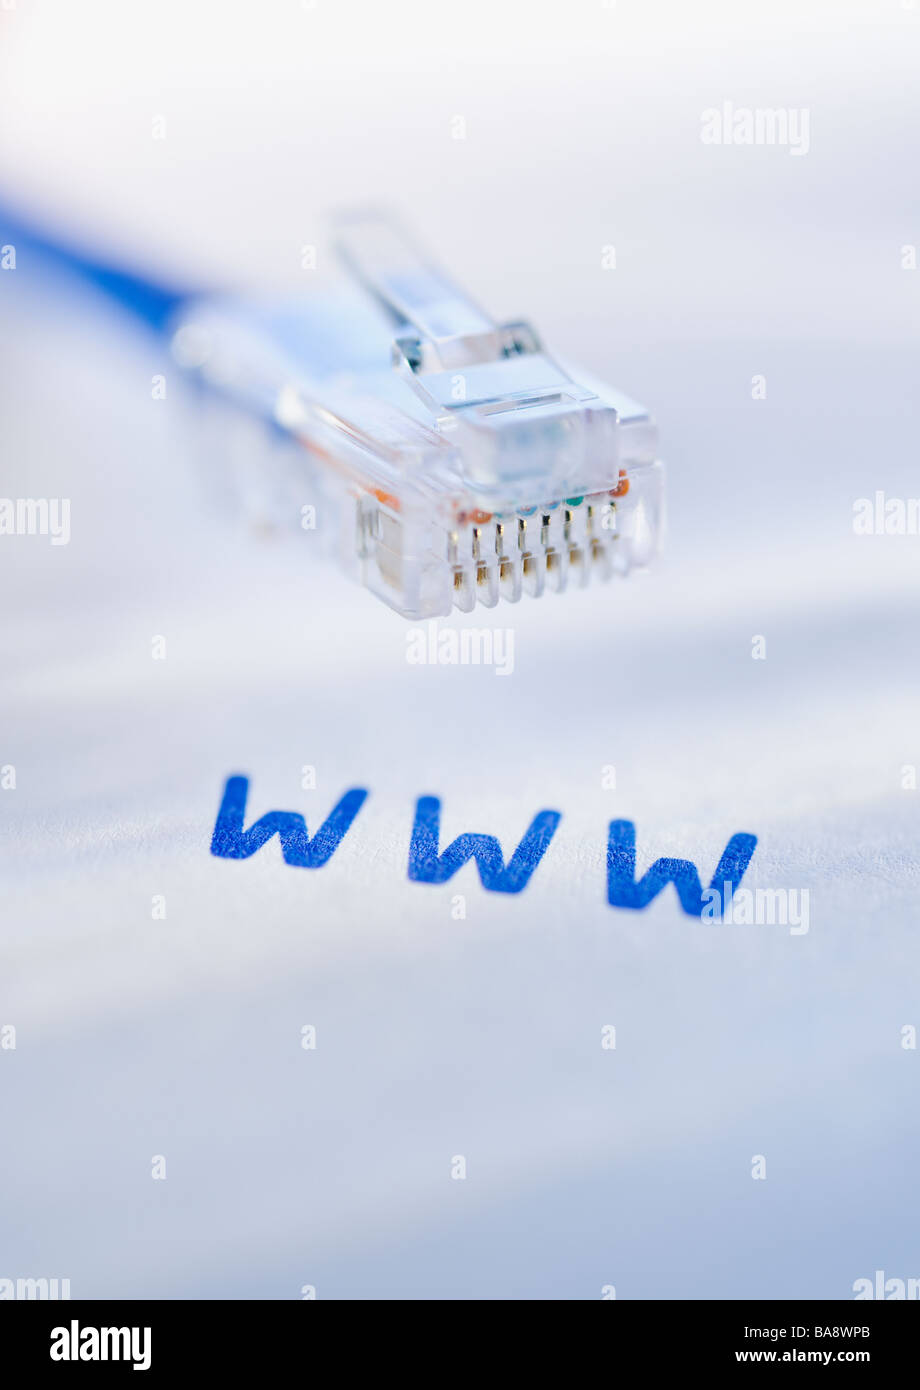 Network cable and world wide web acronym - Stock Image